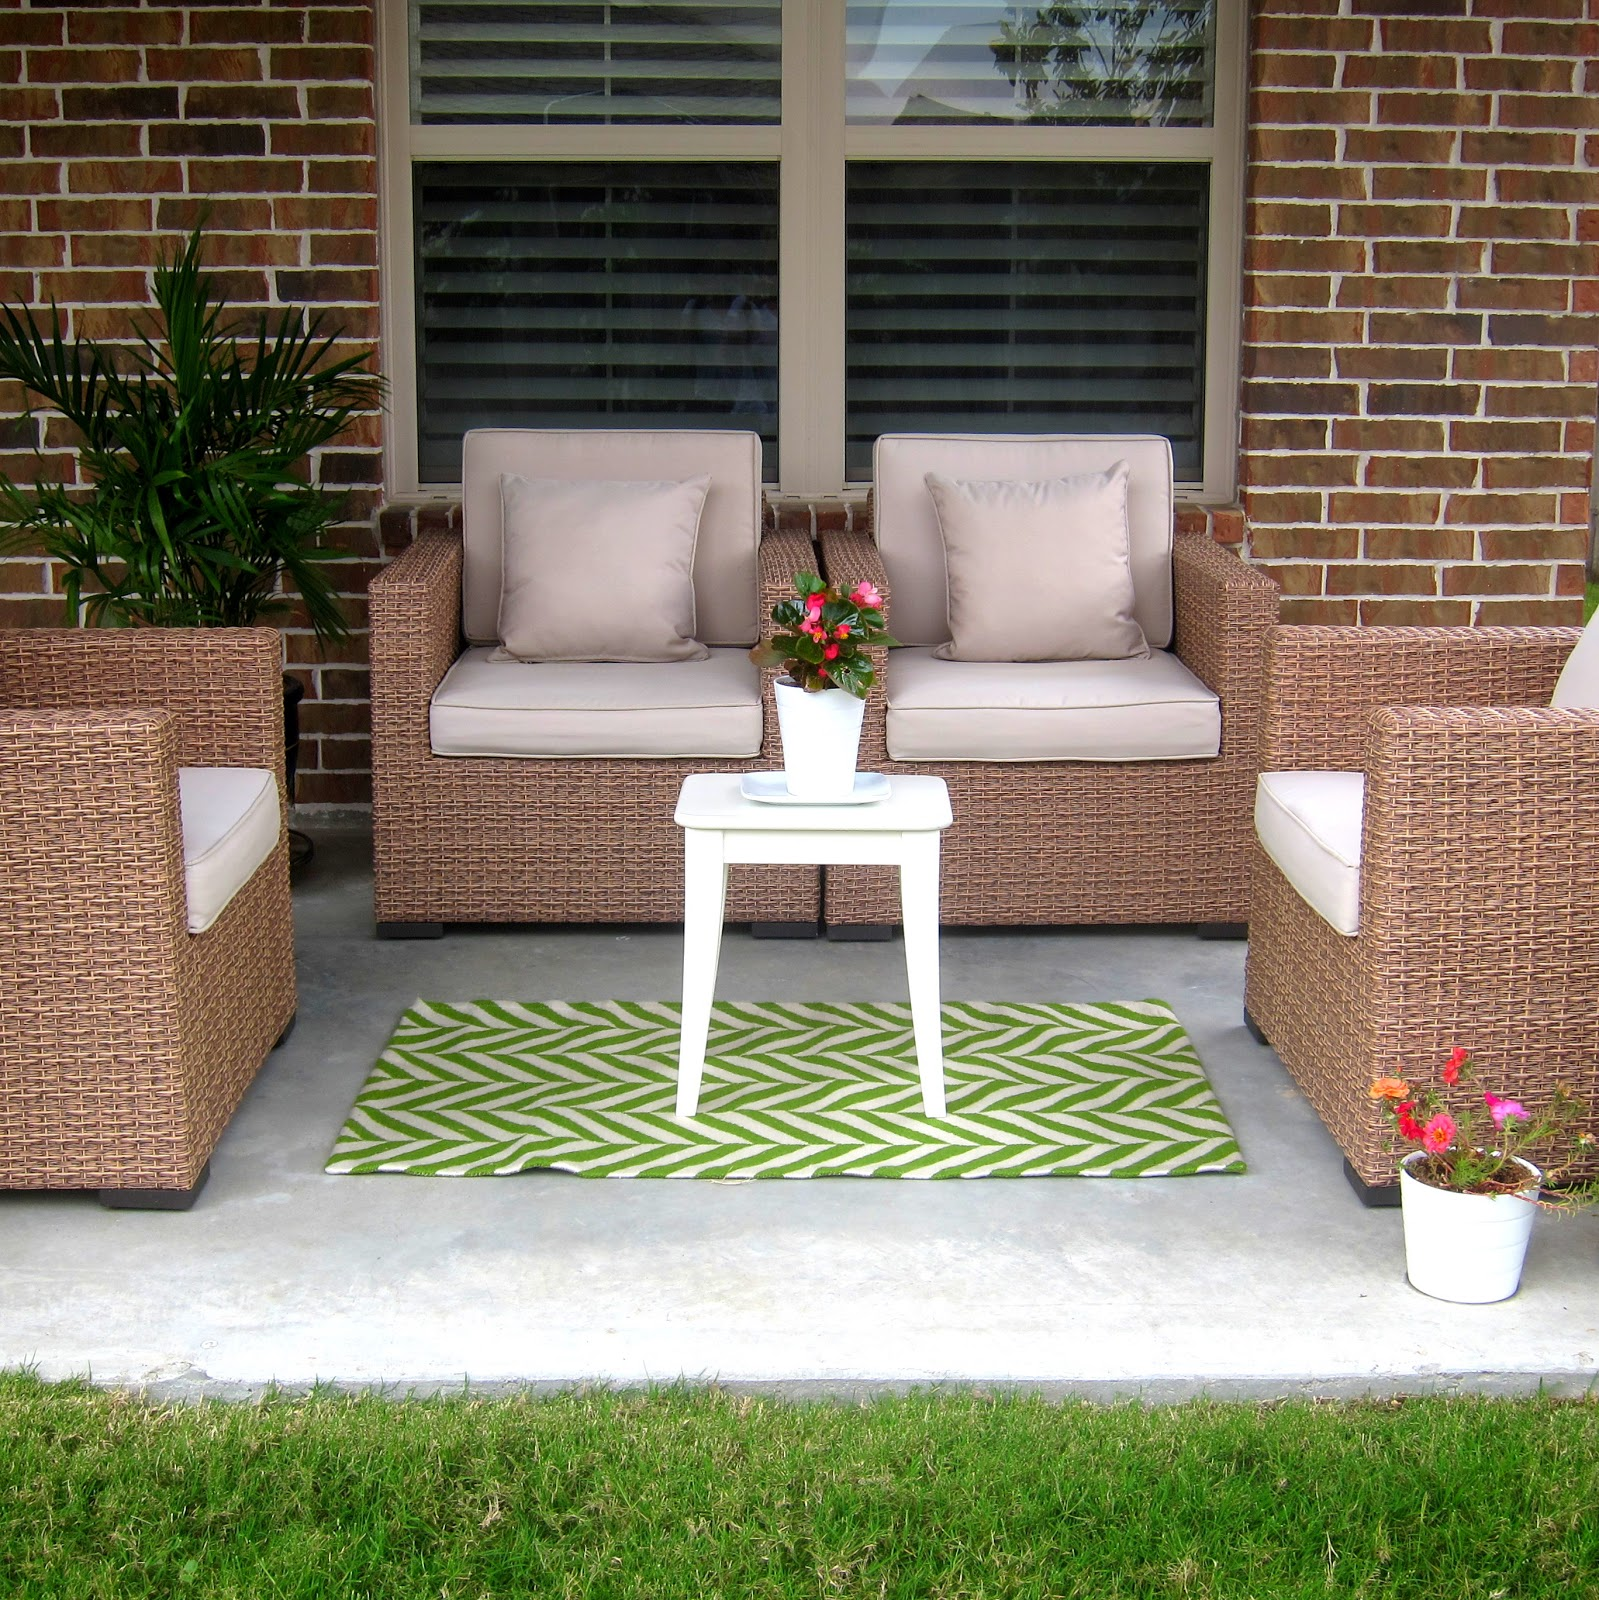 patio rug decor ideas patio rugs elegant wicker patio furniture with cushions and SVWXSLR